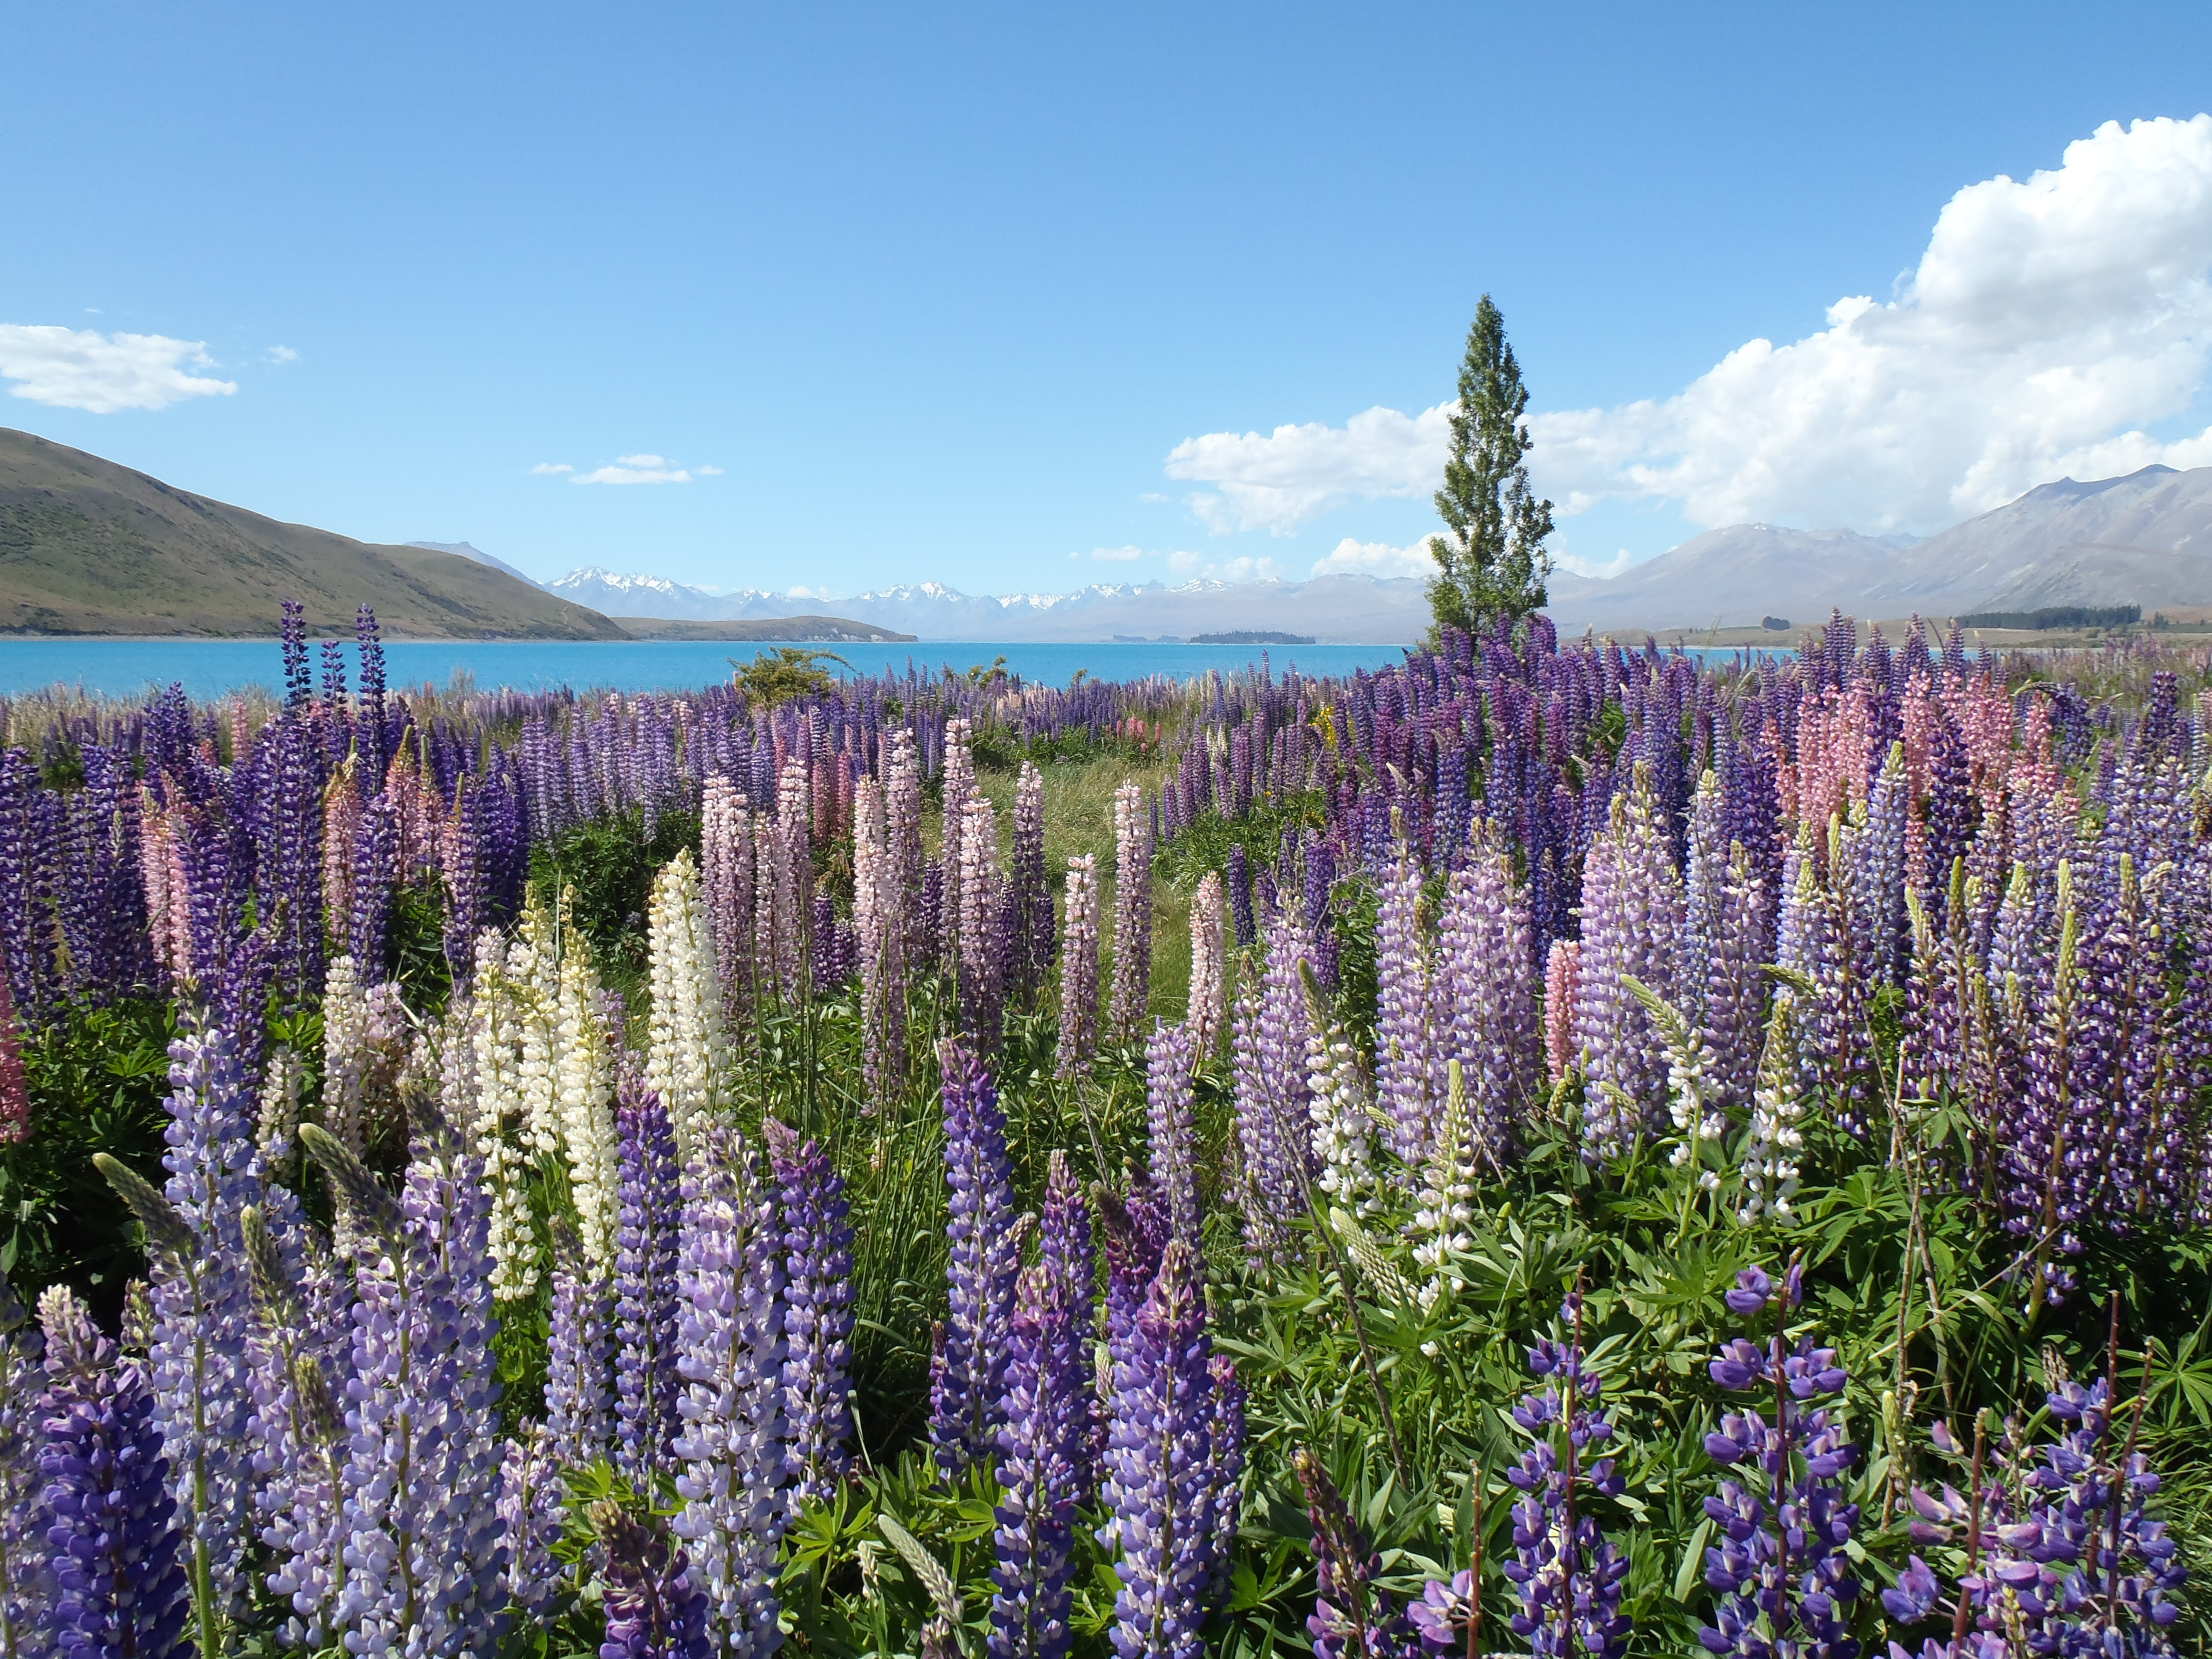 Tall lupine flowers in a meadow by a blue mountain lake